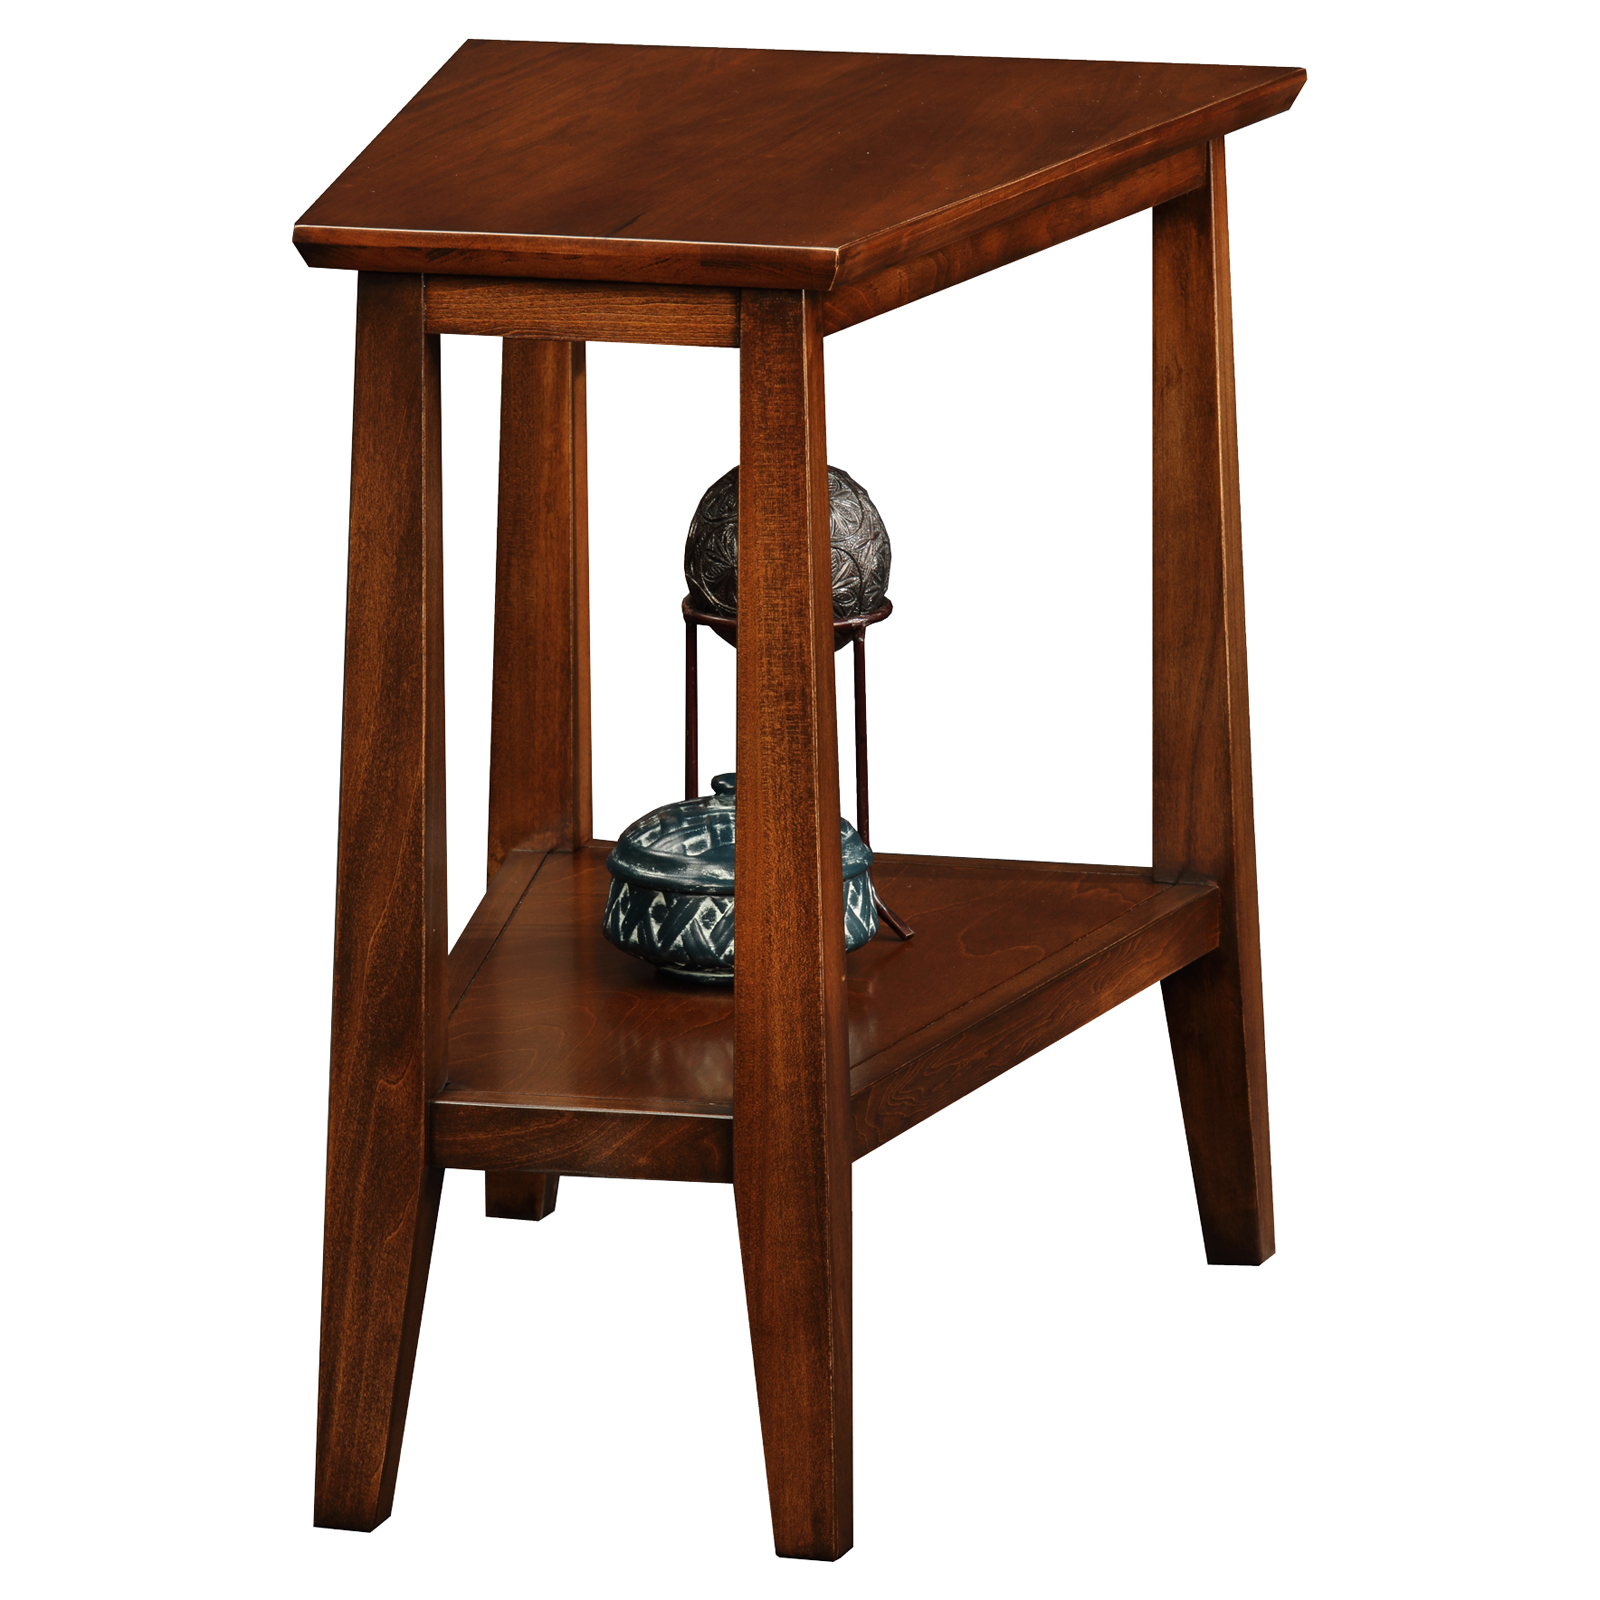 Leick Recliner Wedge Chocolate Cherry End Table Hayneedle